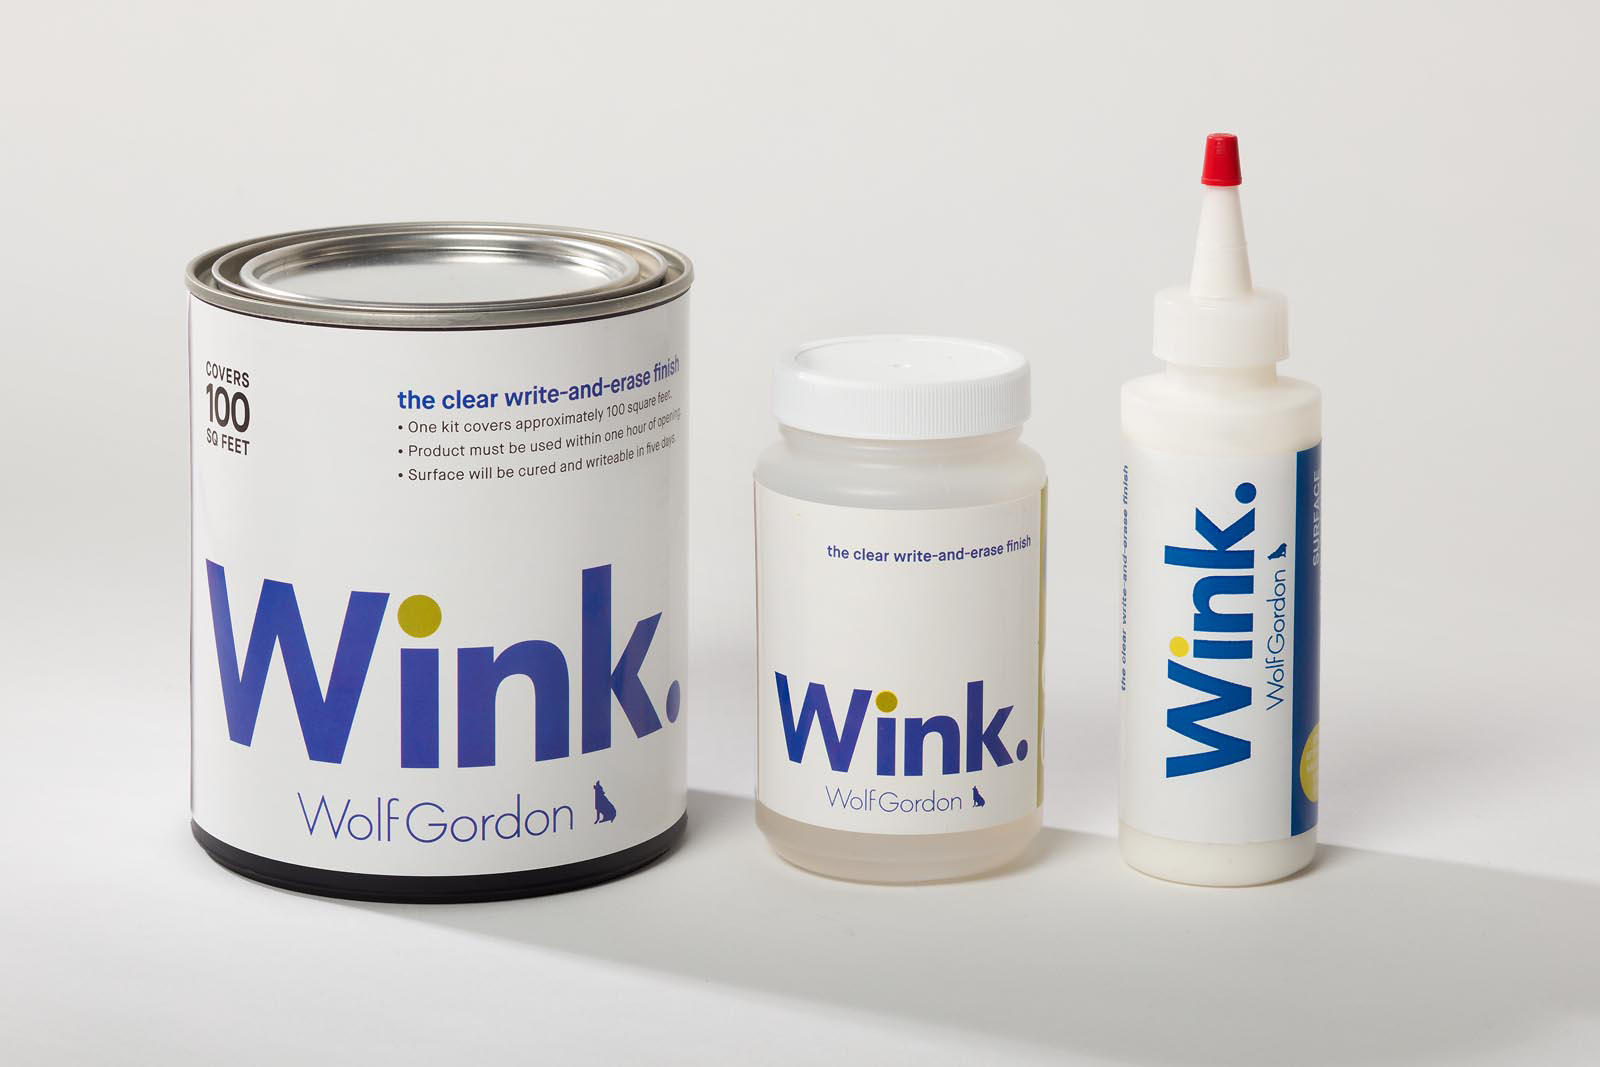 Turn A Wall Into A Whiteboard Wink Wall Coatings From Wolf Gordon Architonic